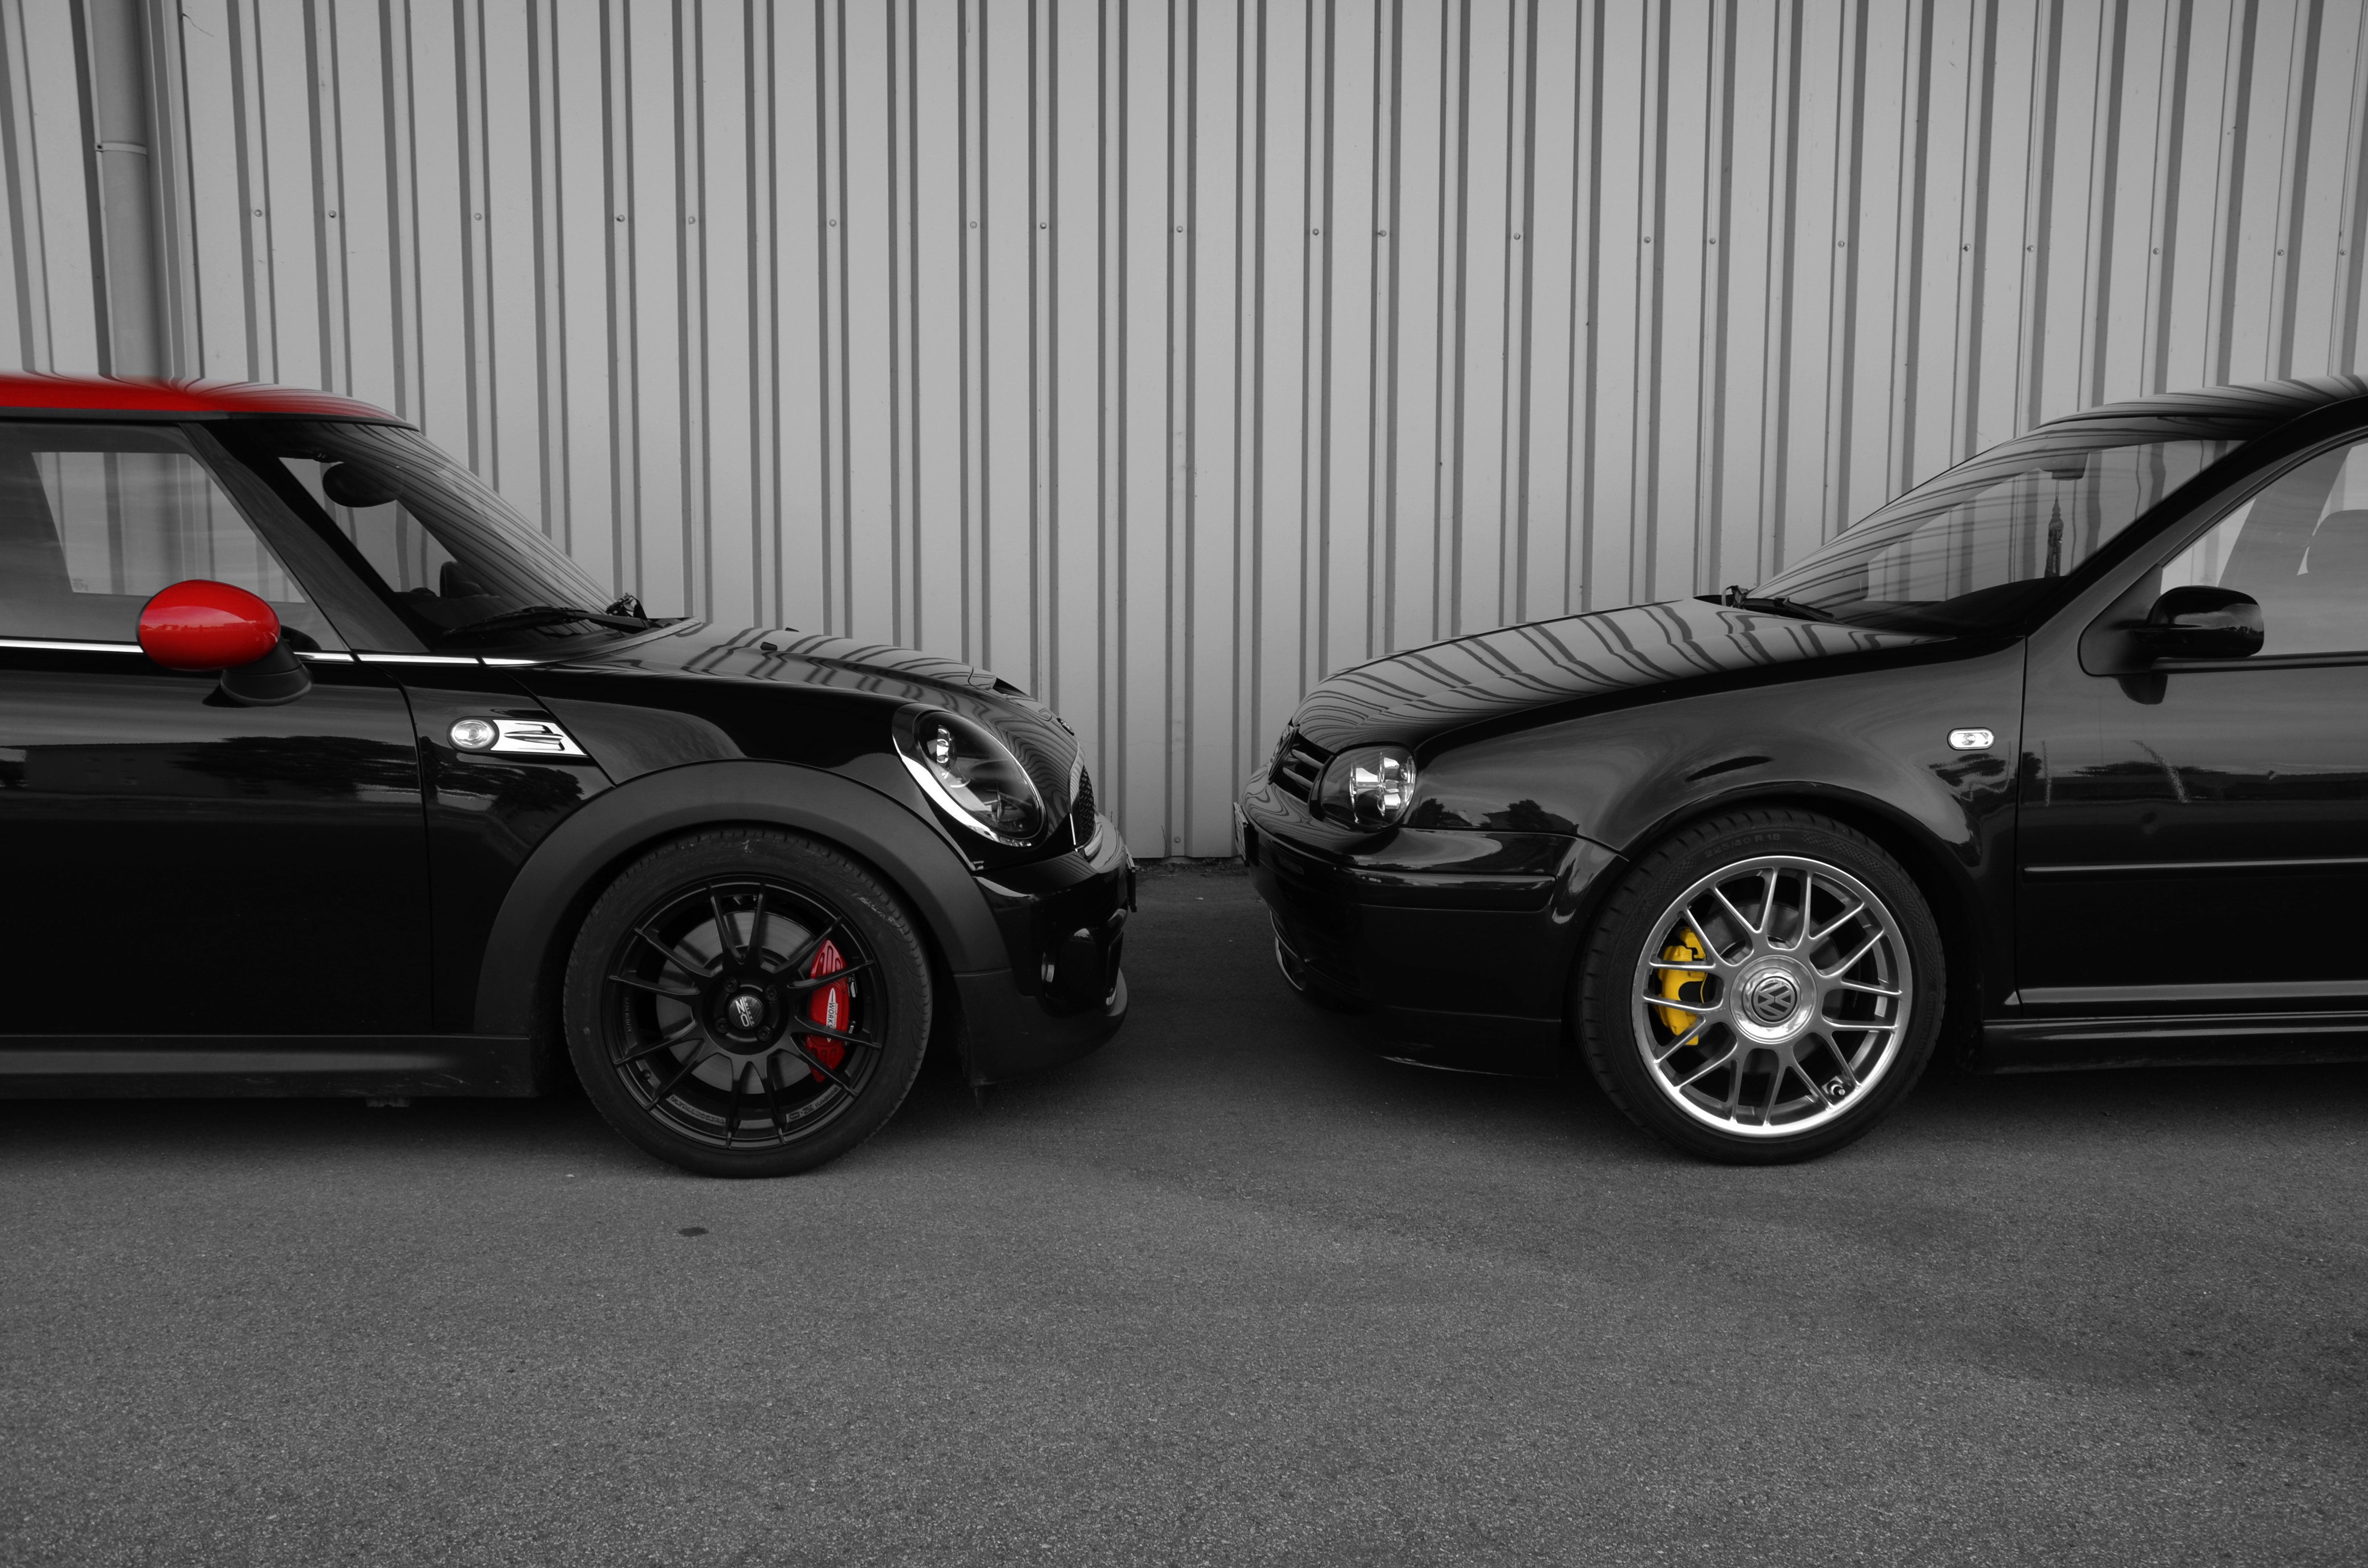 Galerie: MINI John Cooper Works trifft VW Golf IV GTI 25 Years Edition